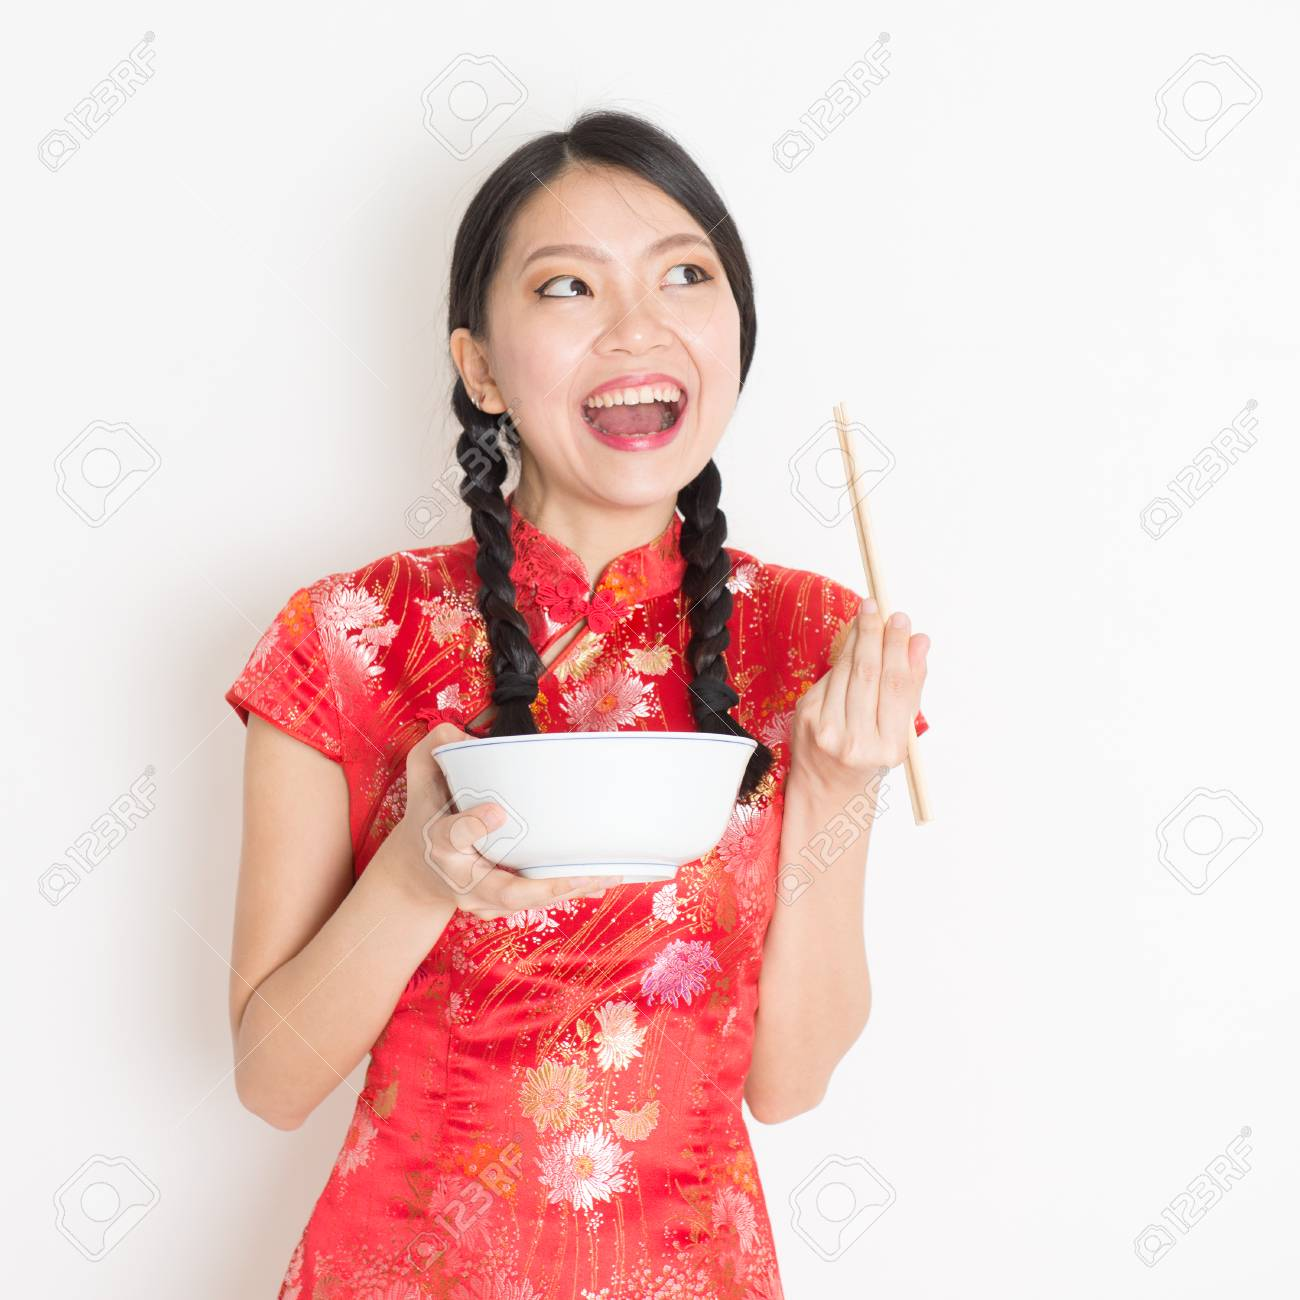 deec26f8d Portrait of young Asian woman in traditional cheongsam dress eating, hand  holding bowl and chopsticks